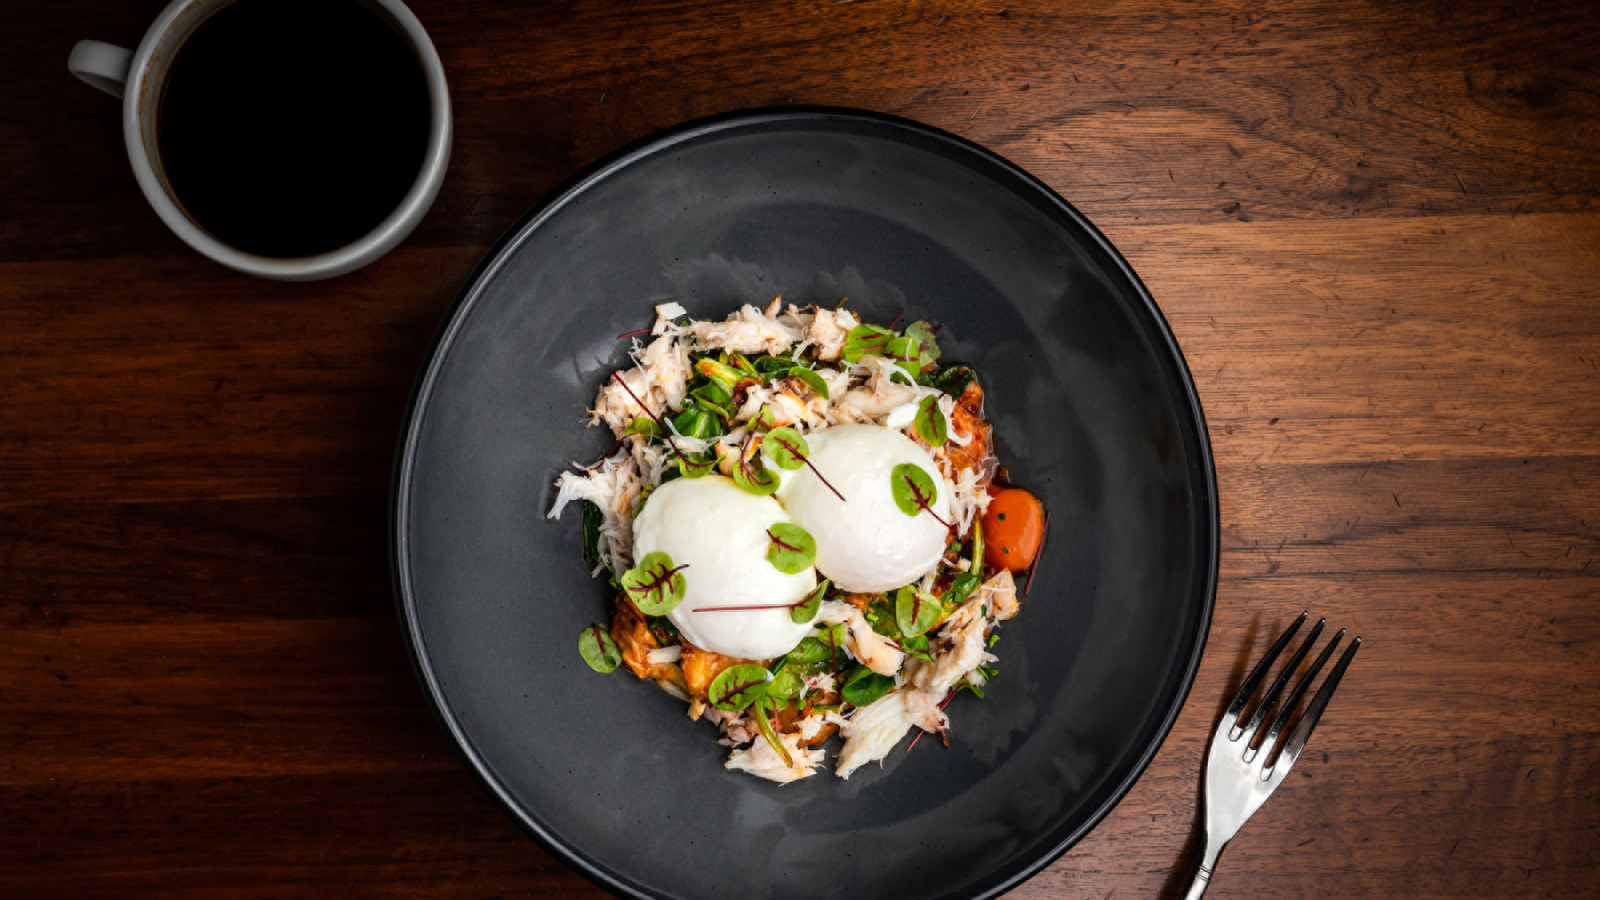 YEW Launches a New Three-Course Weekend Brunch Promo